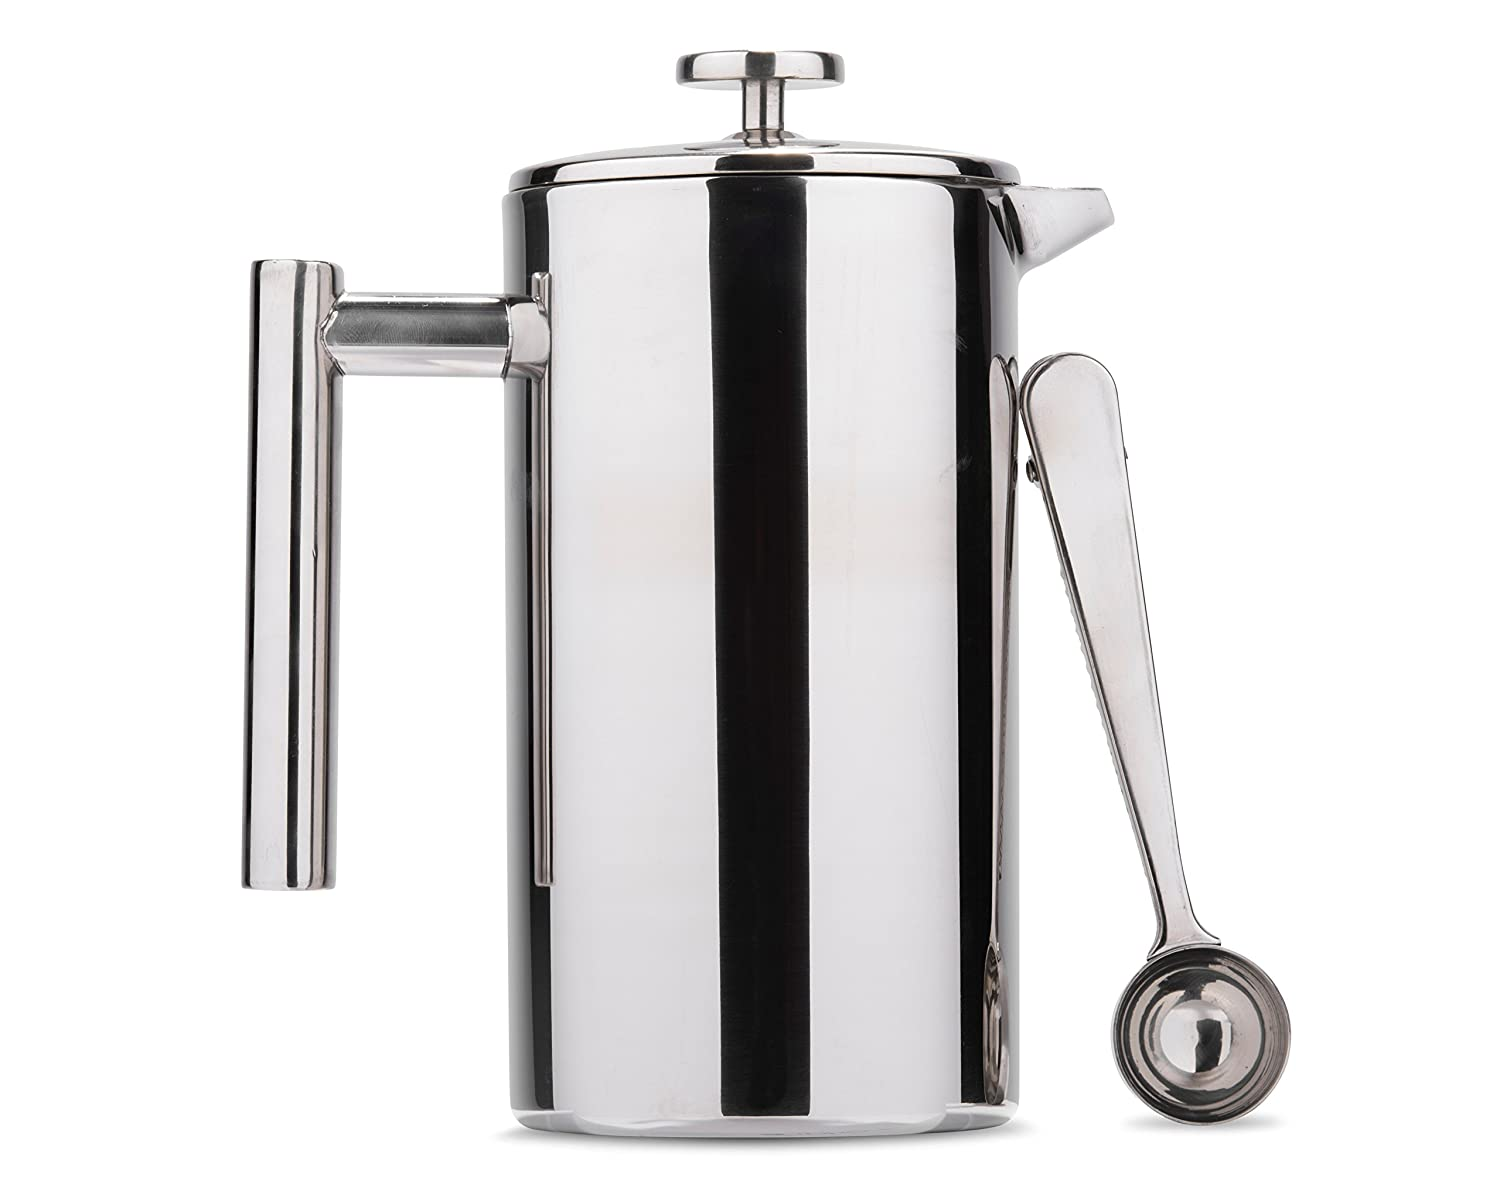 Es Perto Stainless Steel French Press Coffee Maker 34 Ounce, Double Wall Insulated, Manual, Portable, Chrome Finish